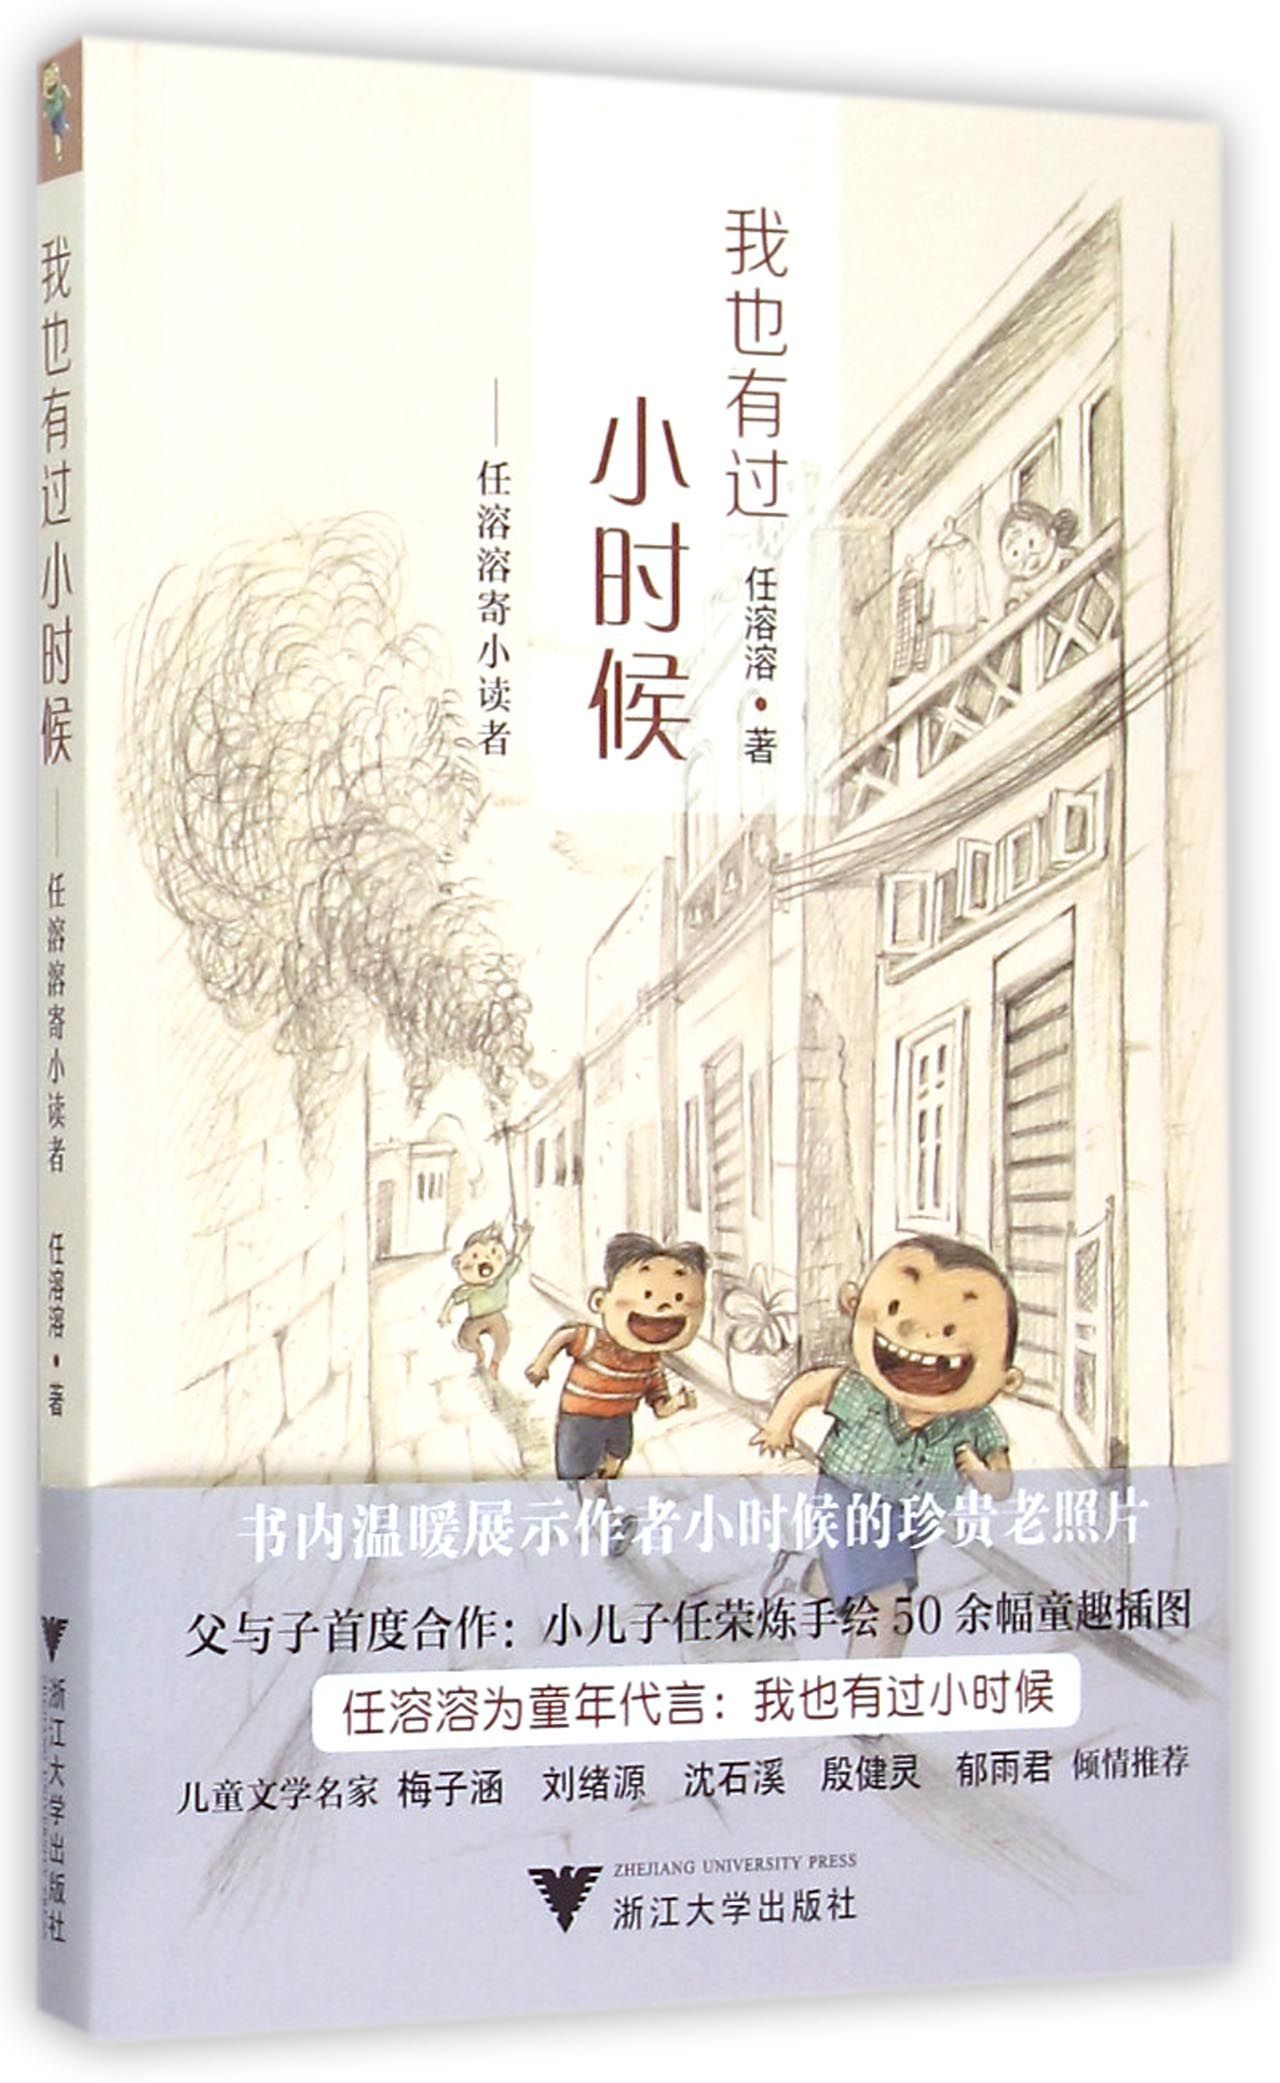 I Used to be a Child (To Little Readers Ren Rongrong)我也有过小时候--任溶溶寄小读者 by Ren Rong Rong任溶溶